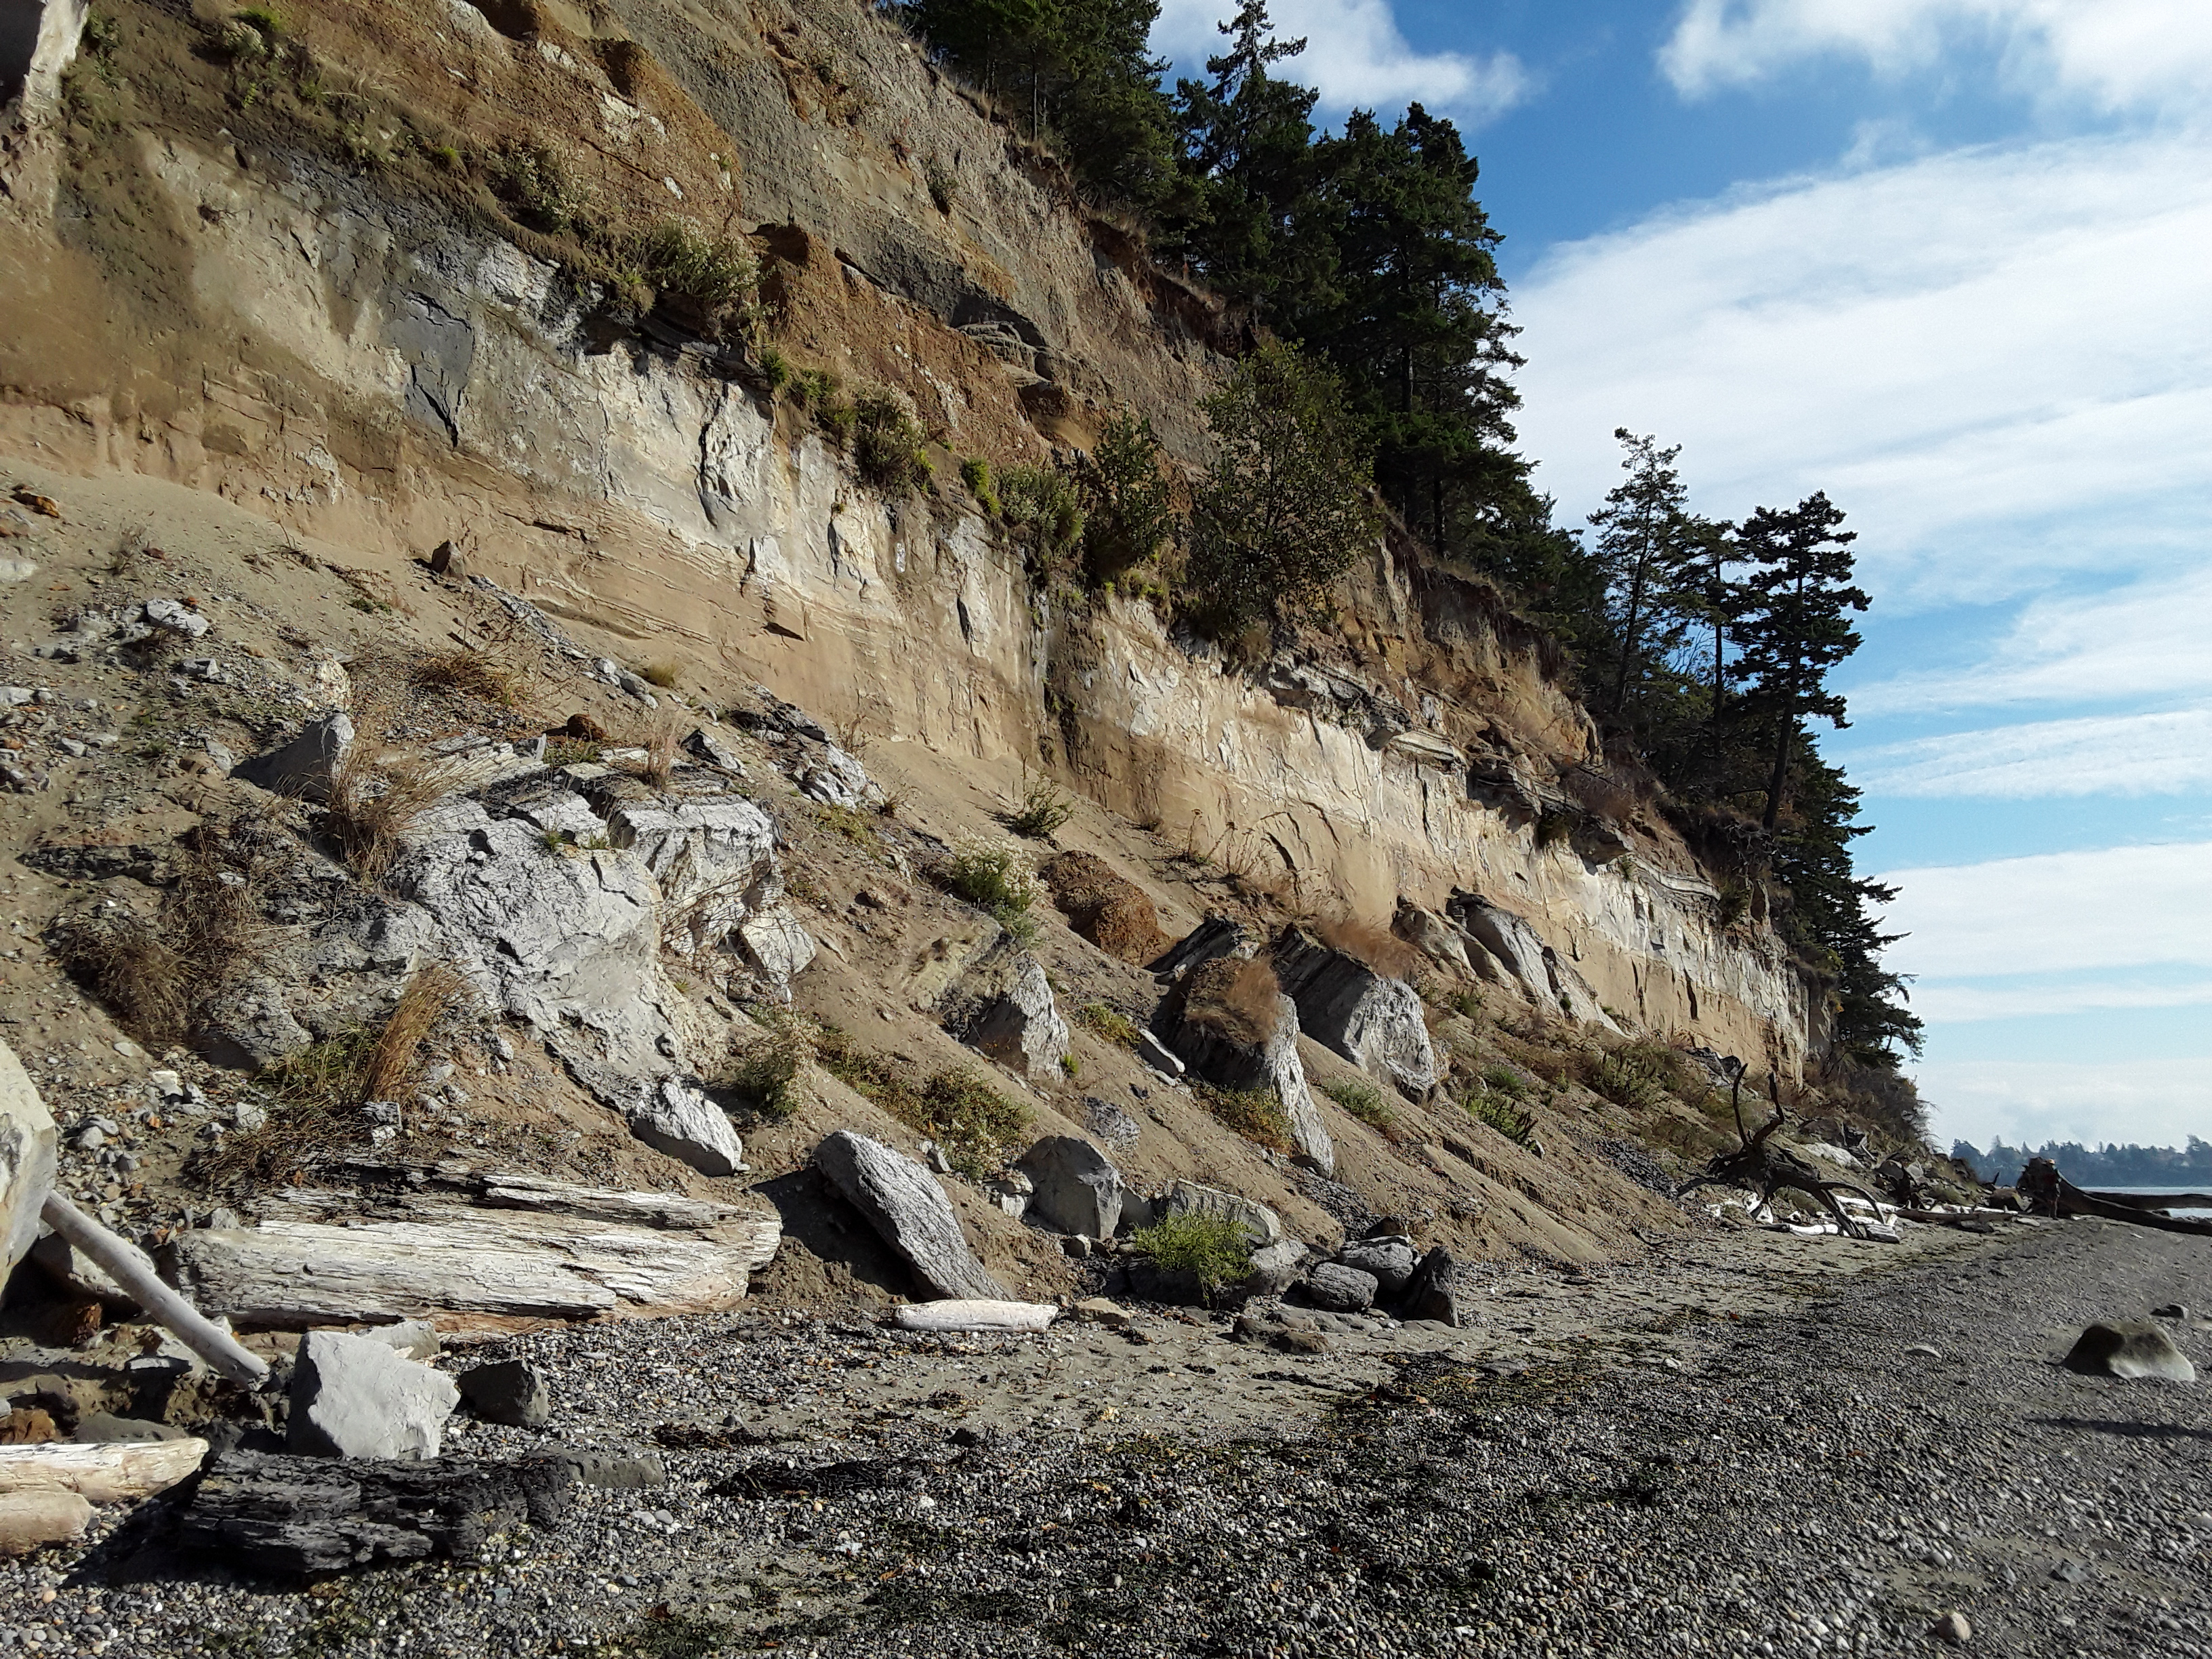 Kelly's Point Conservation Area exposes sediments deposited by glaciers tens of thousands of years old. Photograph credit: Skagit Land Trust staff.